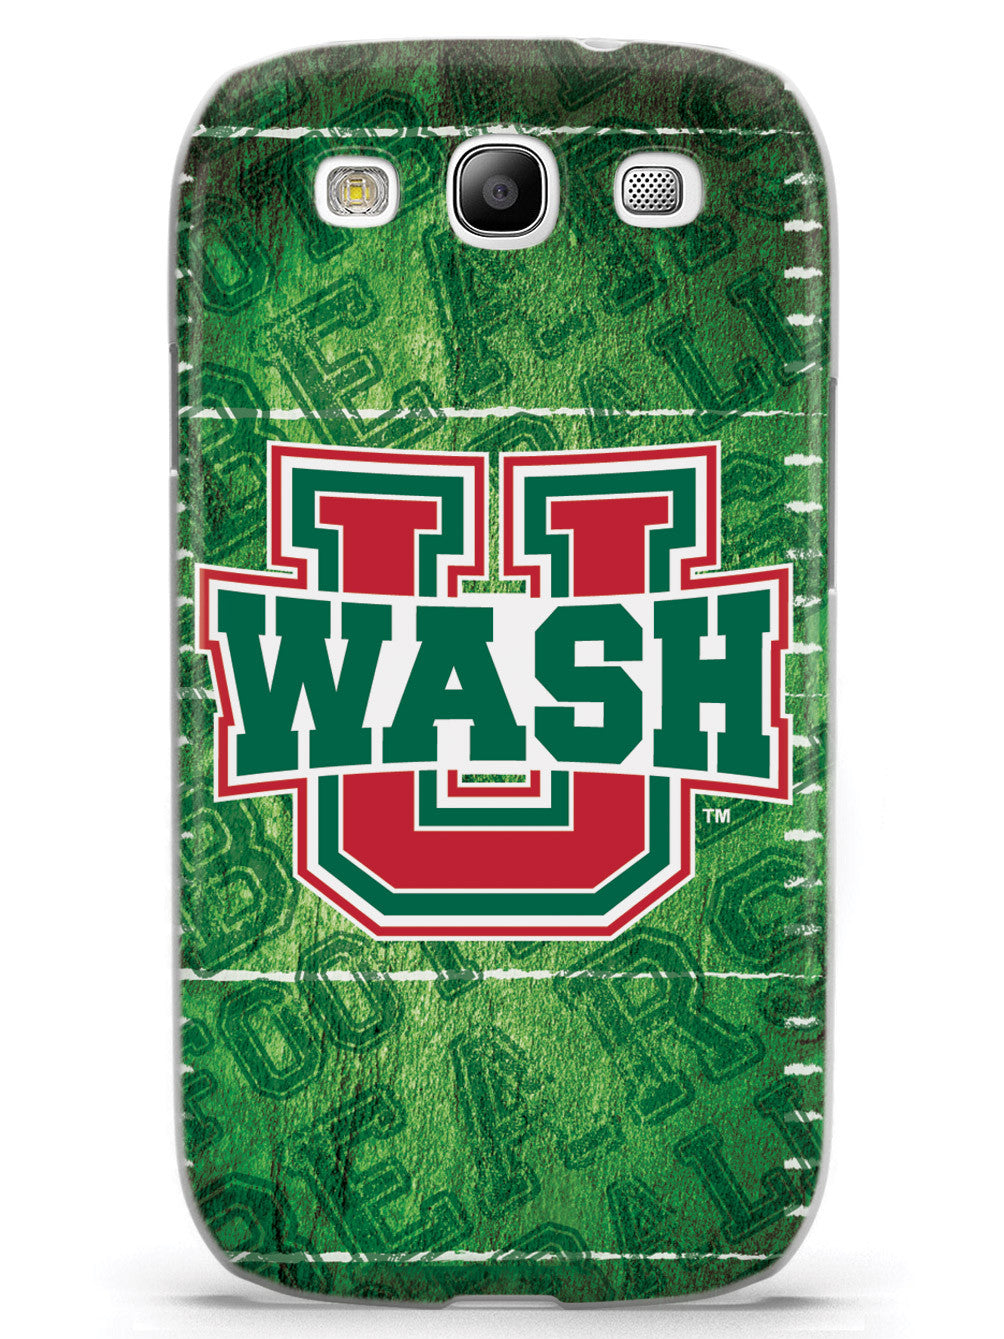 Washington University St Louis - Football Case